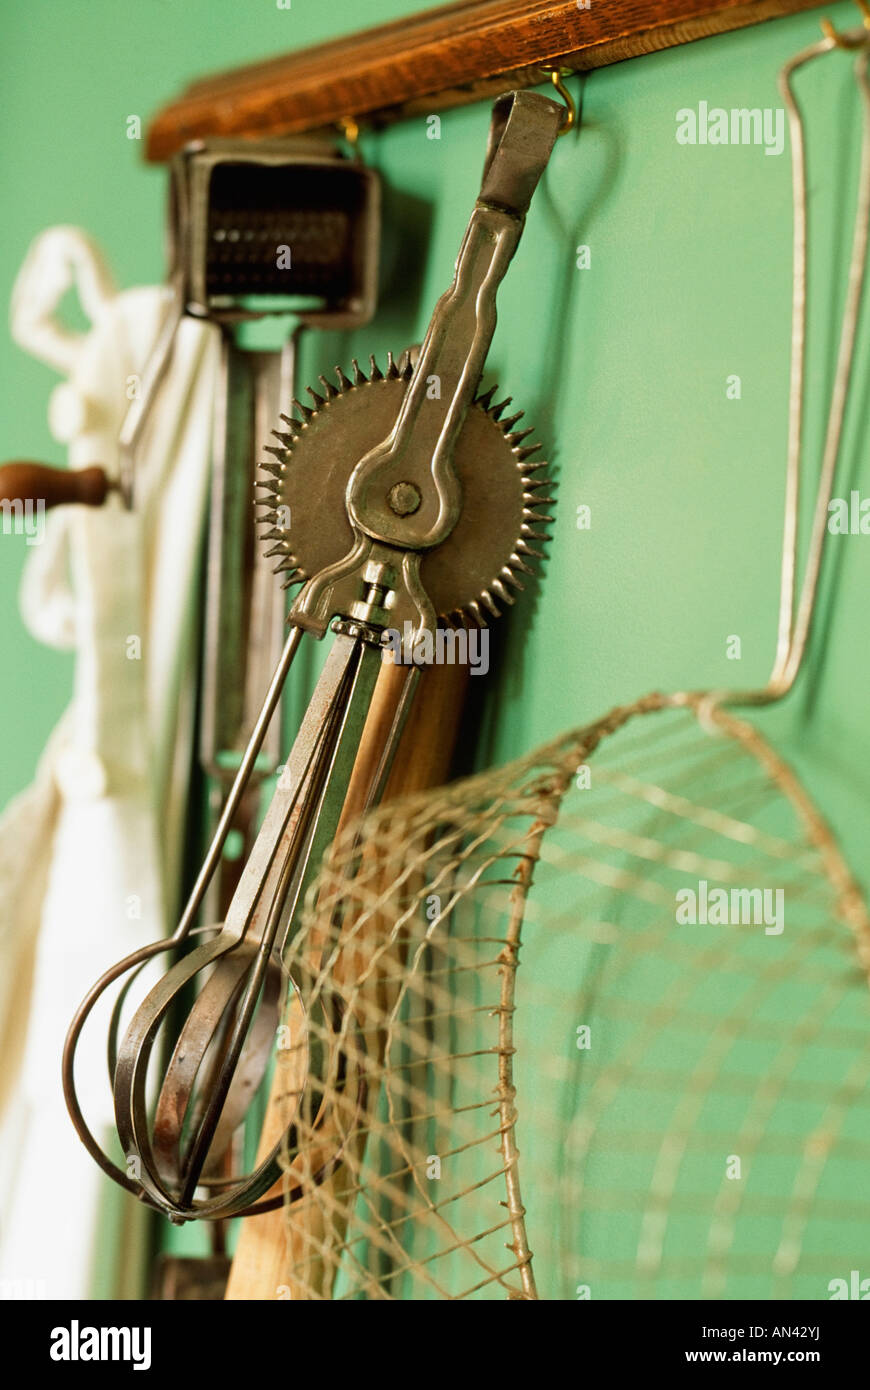 Vintage kitchen gadgets - Stock Photo Vintage Kitchen Gadgets Hanging On A Wall